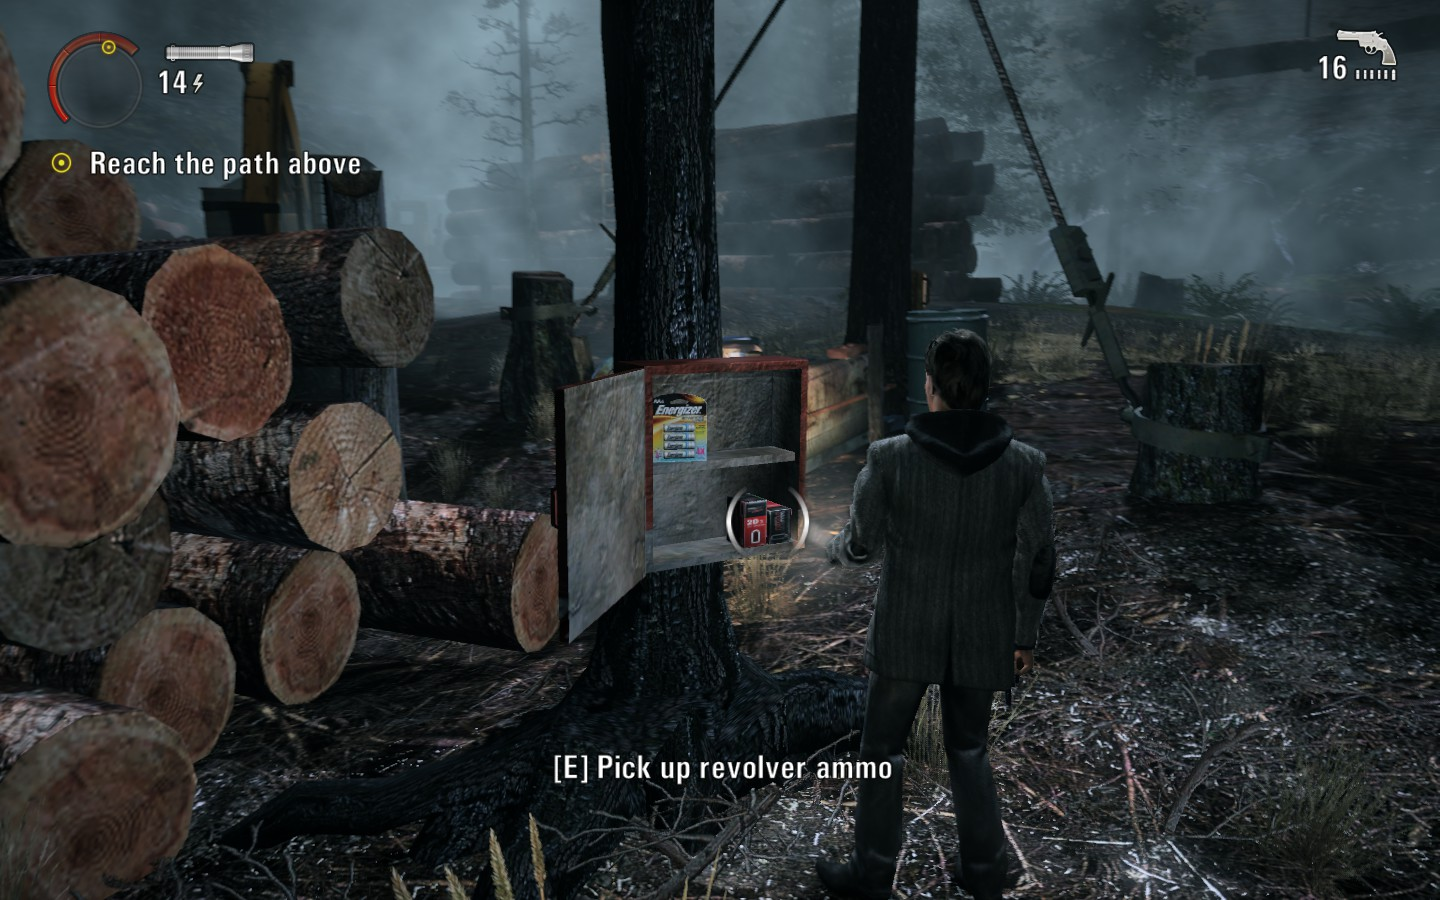 Serial Bus Alan Wake Ridiculous Video Game Product Placement Examples